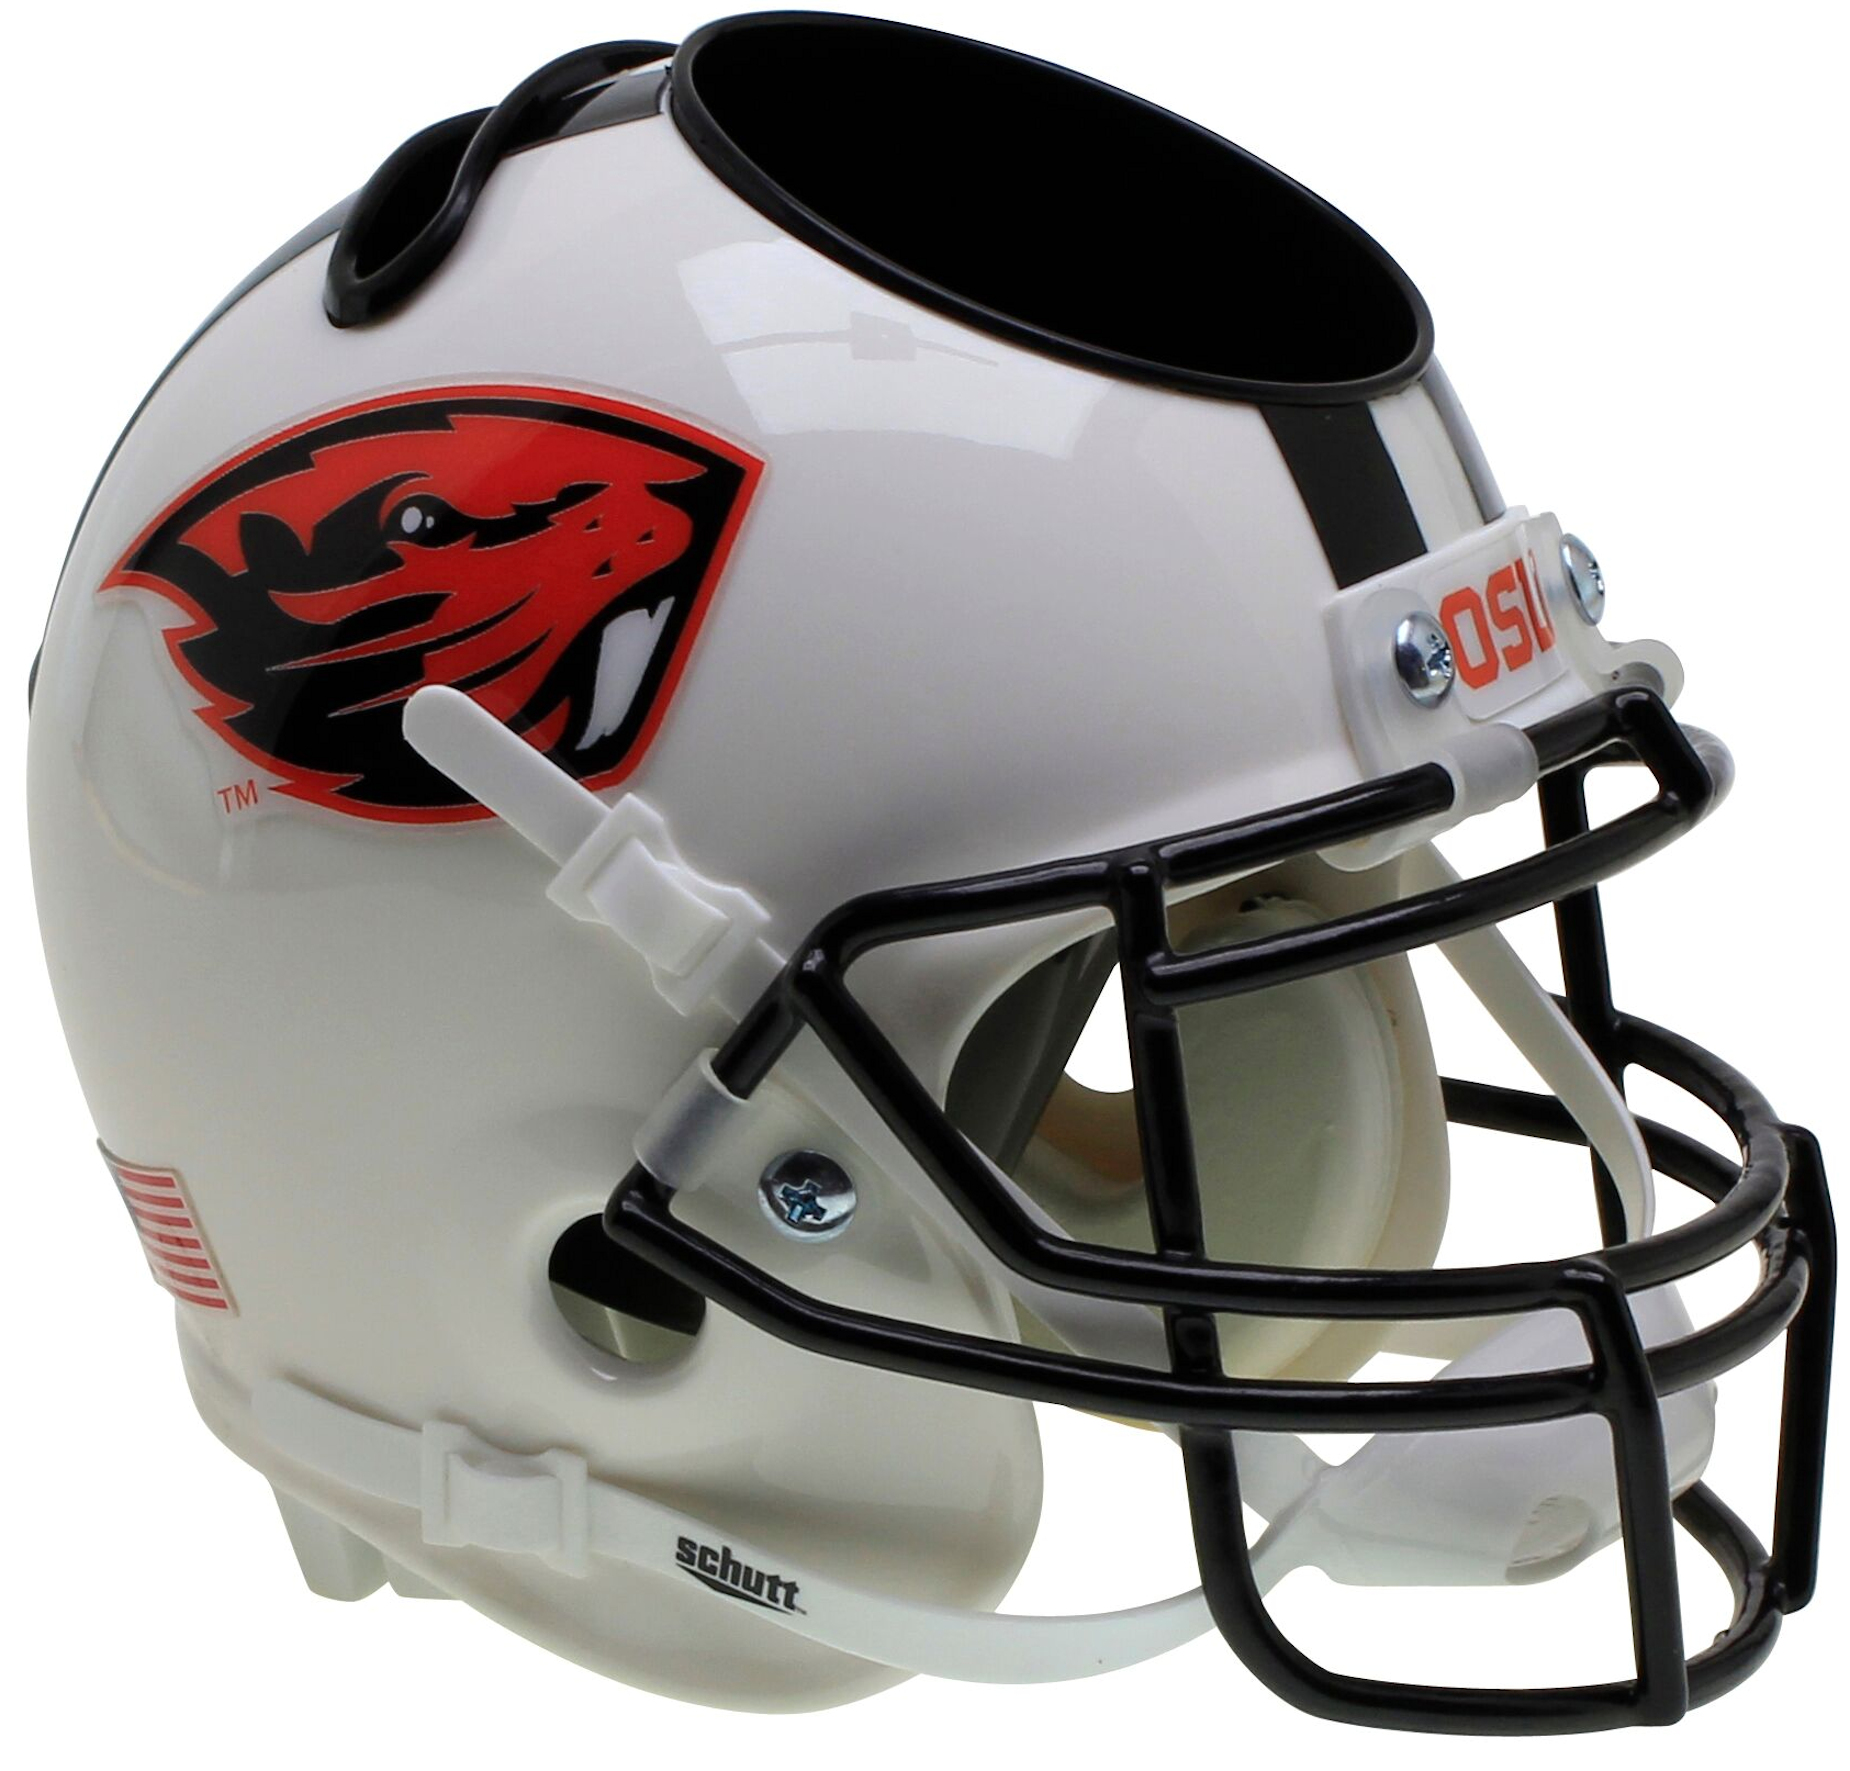 Oregon State Beavers Miniature Football Helmet Desk Caddy <B>White Beaver</B>